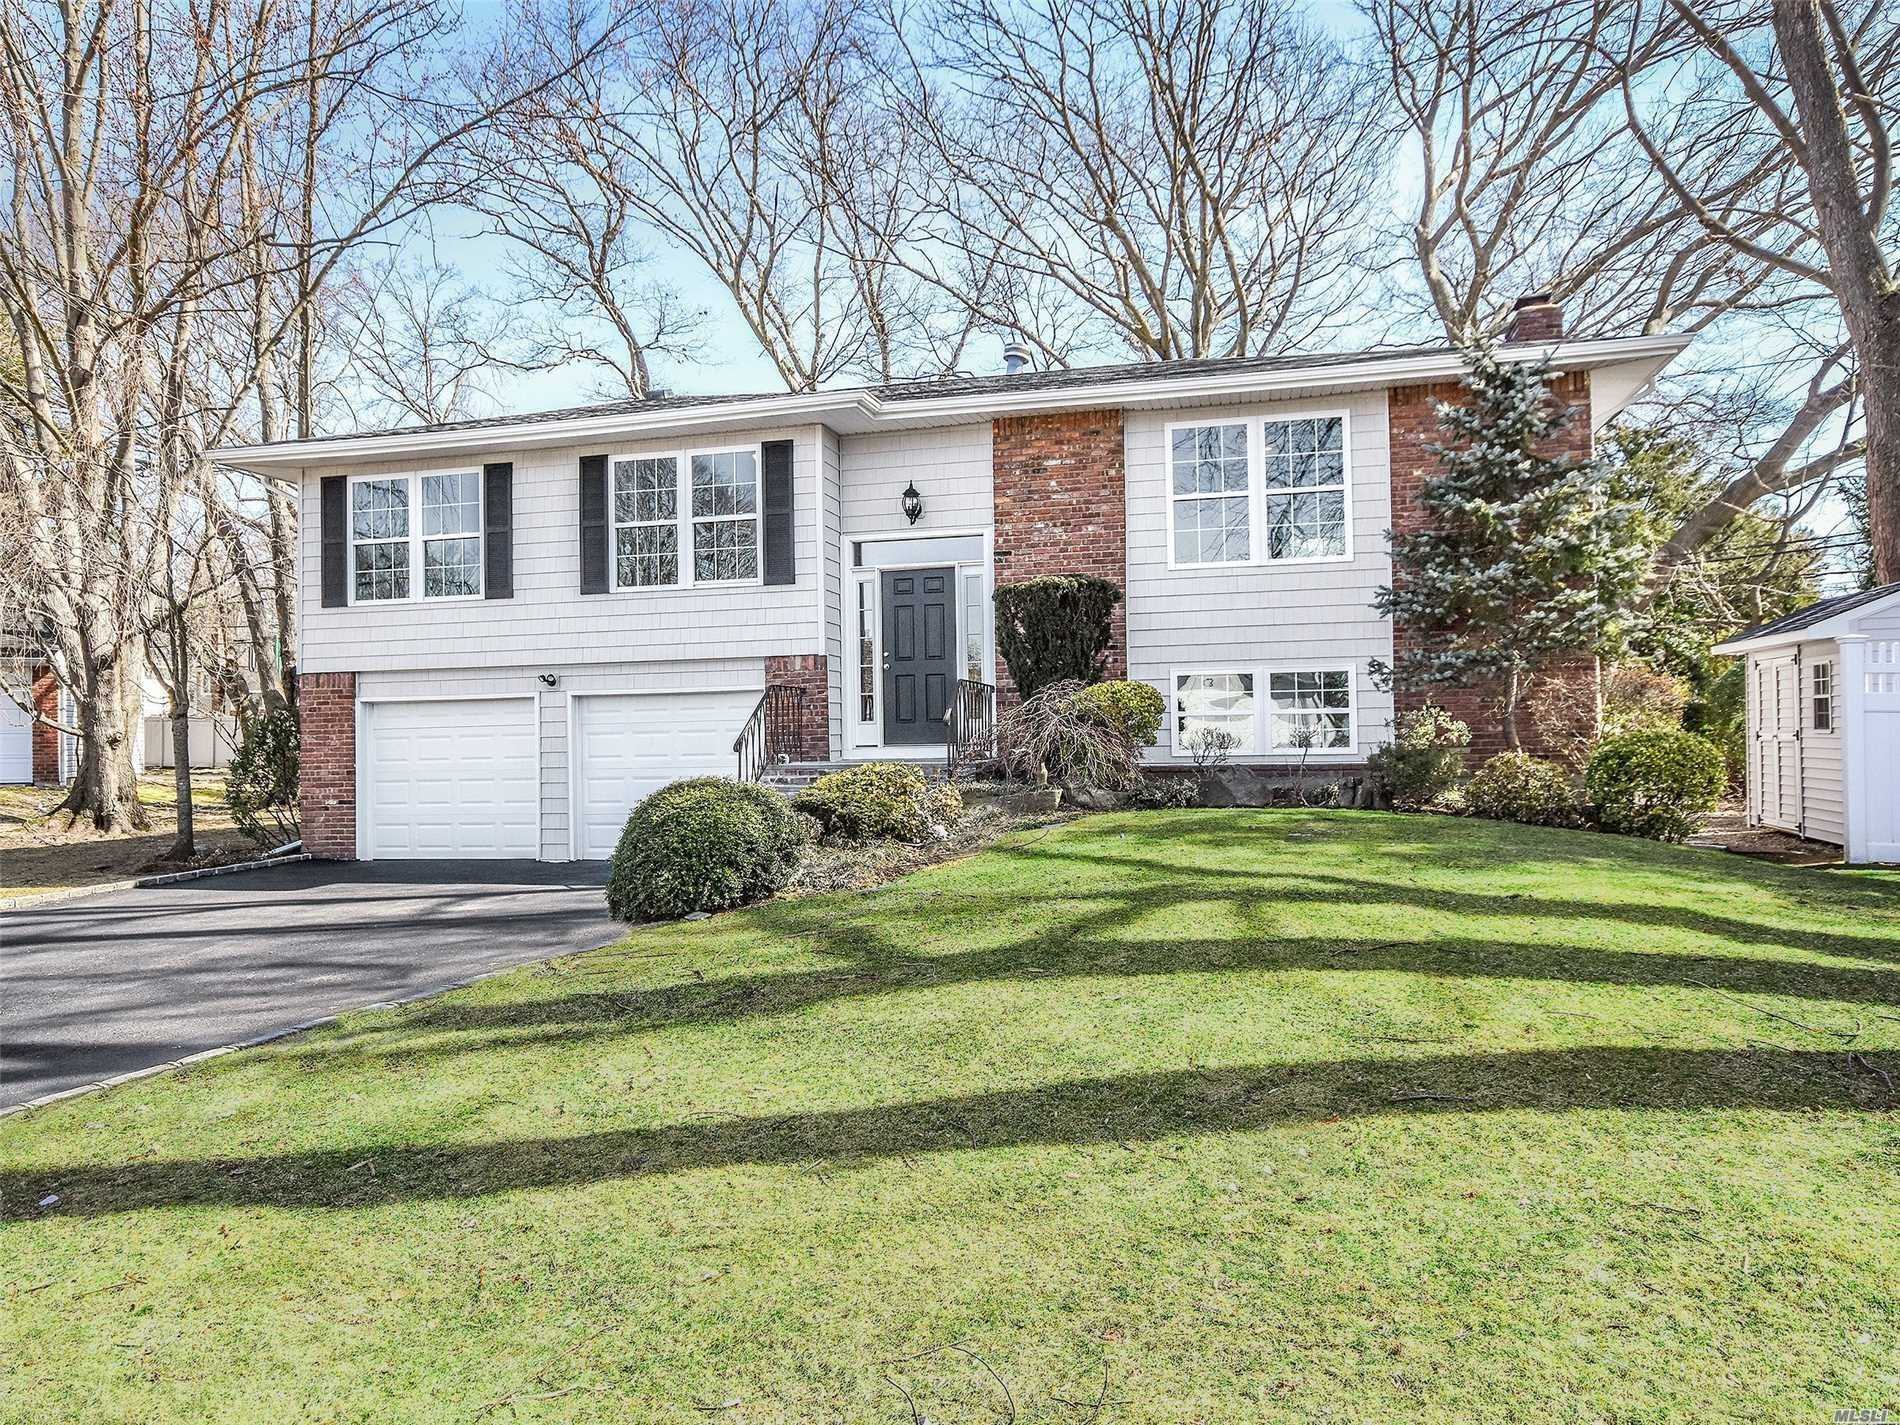 Deal Died! Show and sell. Completely Renovated March 2019. Gleaming Hardwood Floors Throughout. New Kitchen Featuring White Shaker Cabinets Topped With Granite Countertops And Stainless Steel Appliances. All New Bathrooms, New Siding, Windows, Roof, Driveway And Fixtures. Full Basement With Outside Separate Entrance.